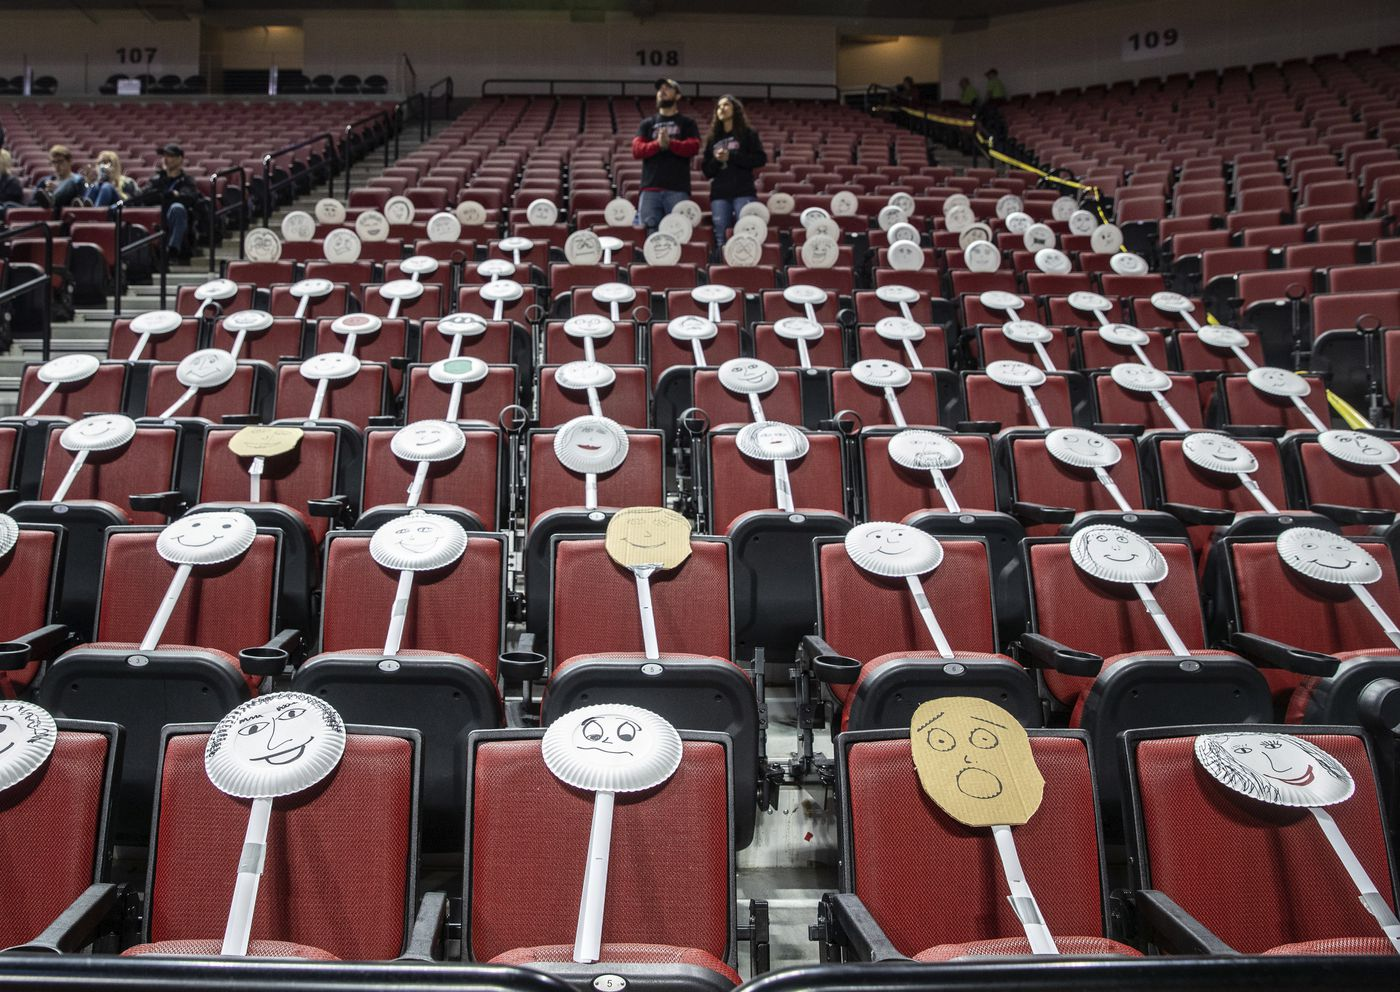 The Auburn fan section got creative by placing paper plate faces on the seats during the Class 1C boys high school basketball tournament championship game against Ogallala at Pinnacle Bank Arena, Saturday, March 14, 2020, in Lincoln, Neb. Crowds were limited to staff and immediate family due to concerns over the coronavirus. (Chris Machian/Omaha World-Herald via AP)